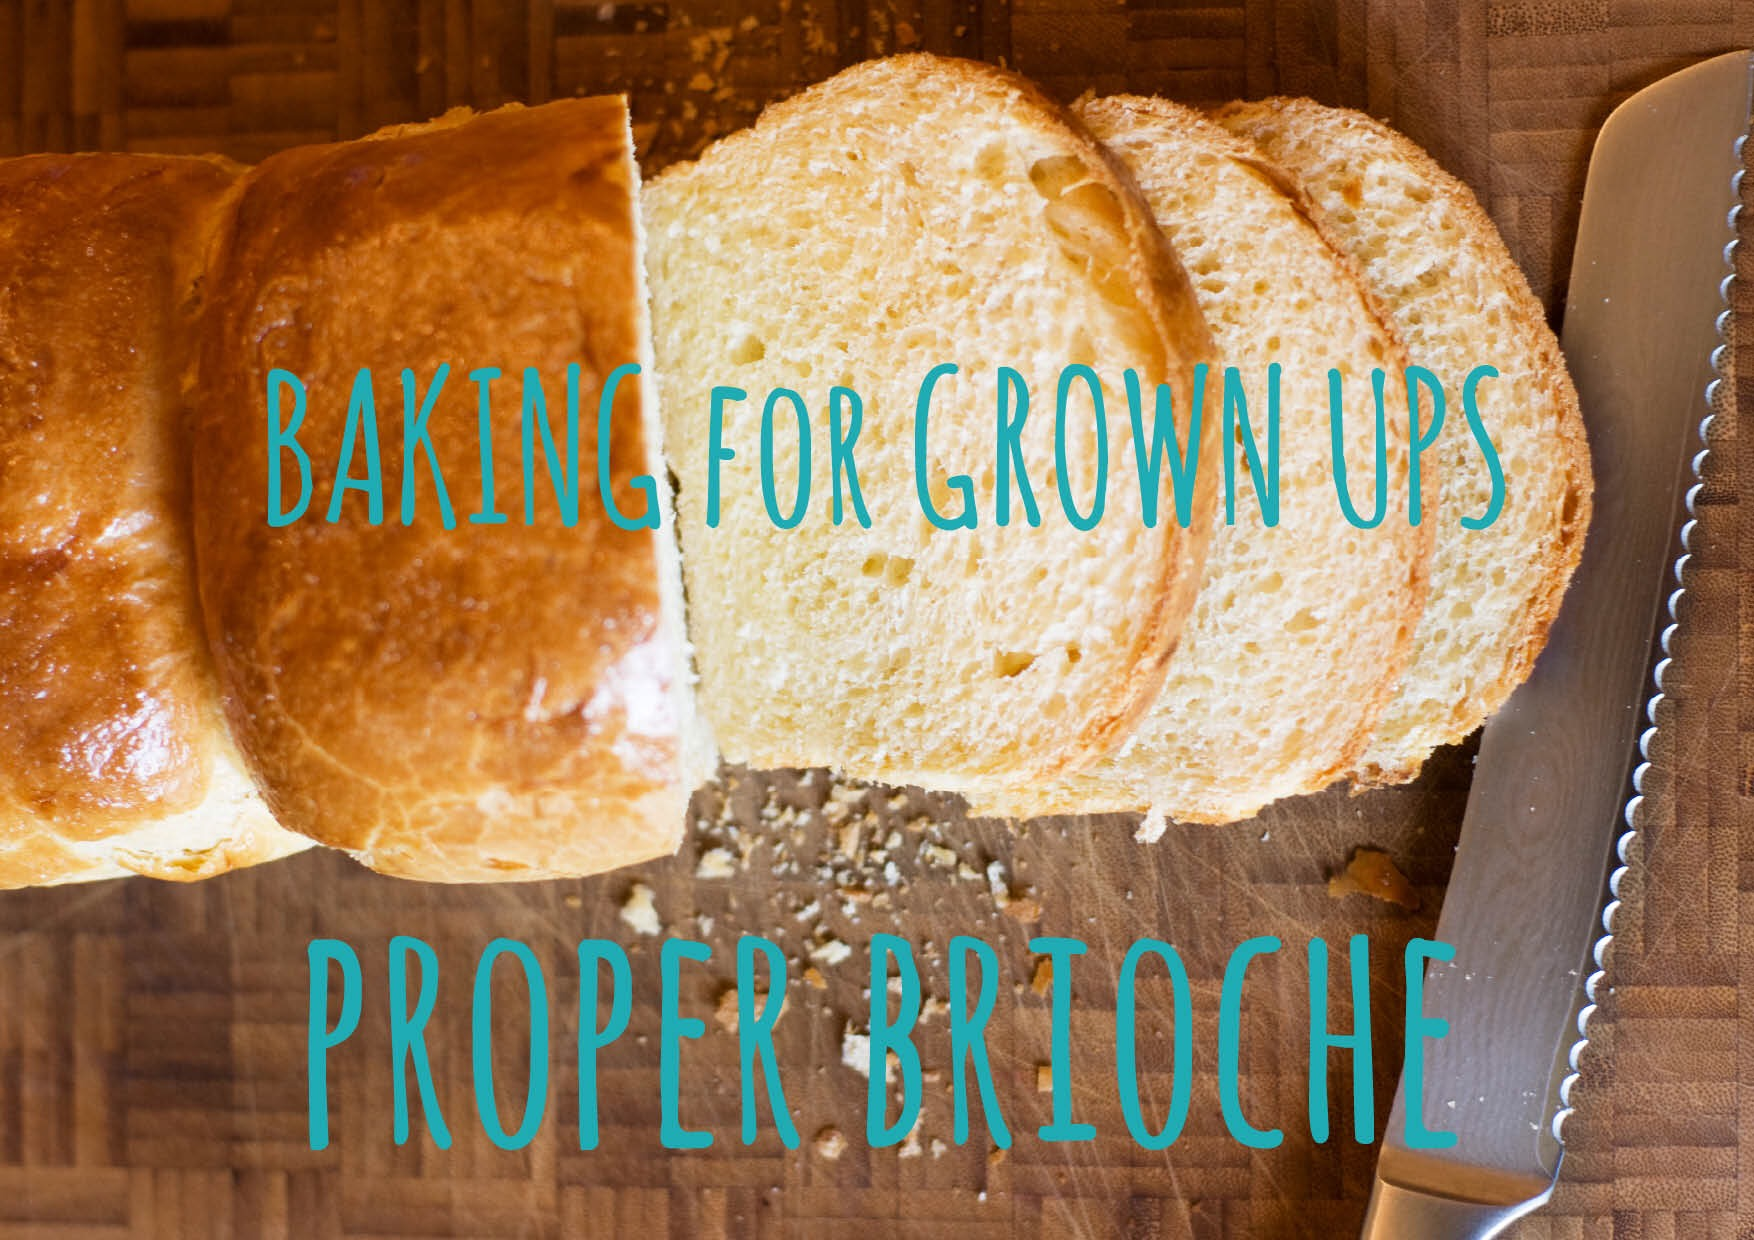 Brioche title photo - Baking for grown ups